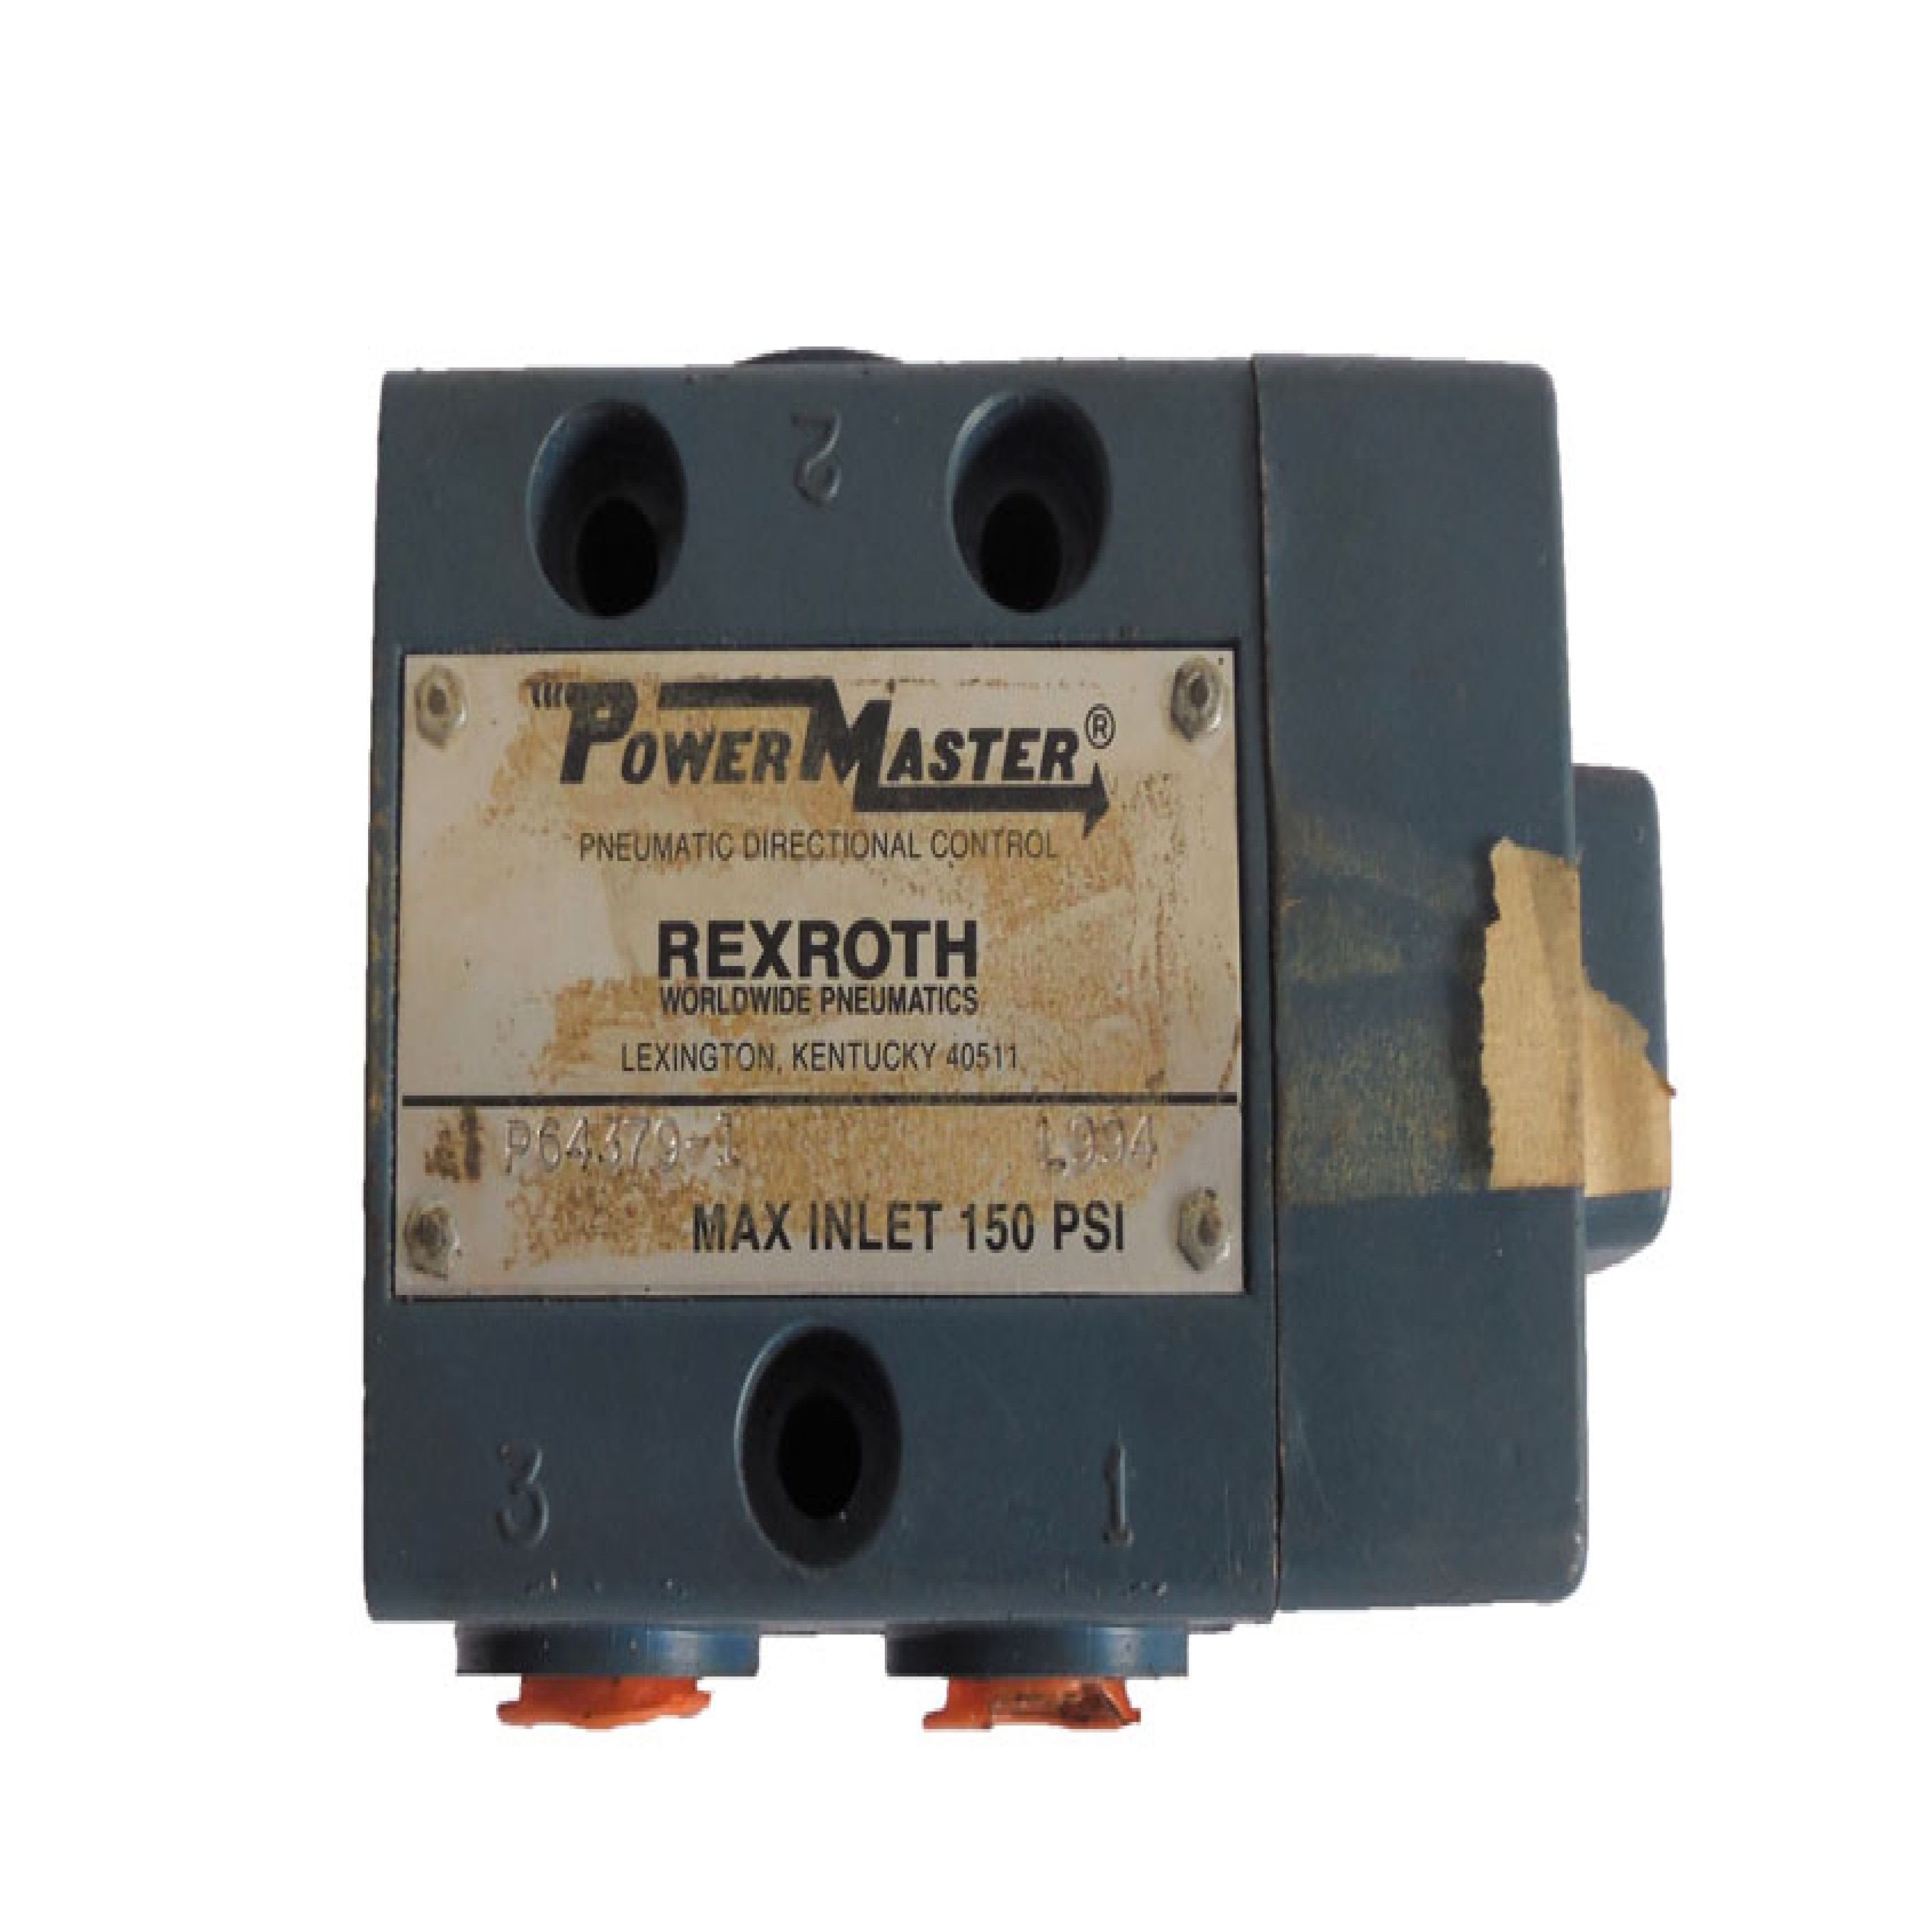 Rexroth  Power Master  P64379